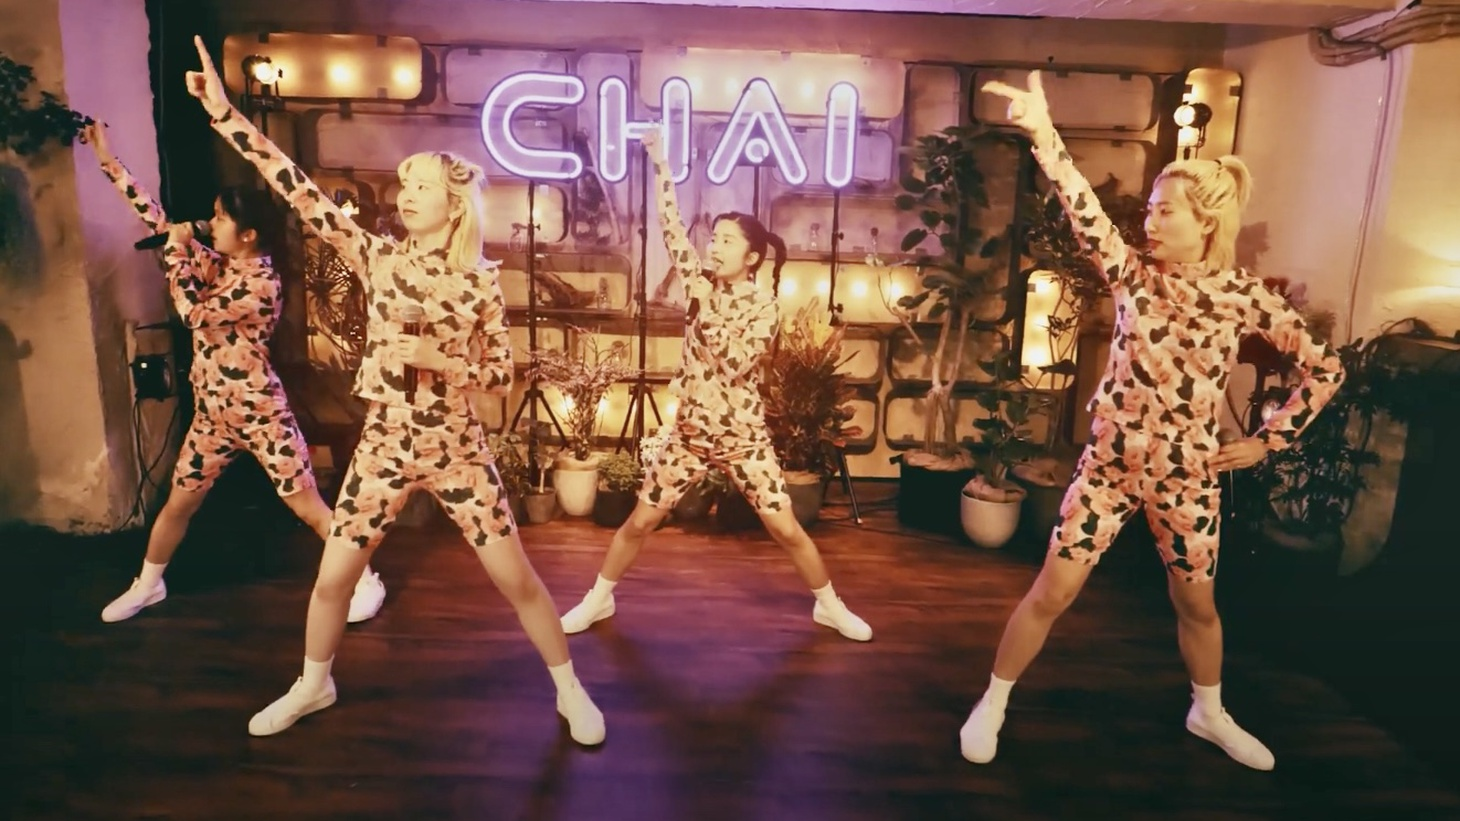 While we'd love nothing more than to don our finest and dance along to CHAI's stage choreography in person, Morning Becomes Eclectic has the next best thing: A live performance and song commentary from CHAI, just for KCRW.